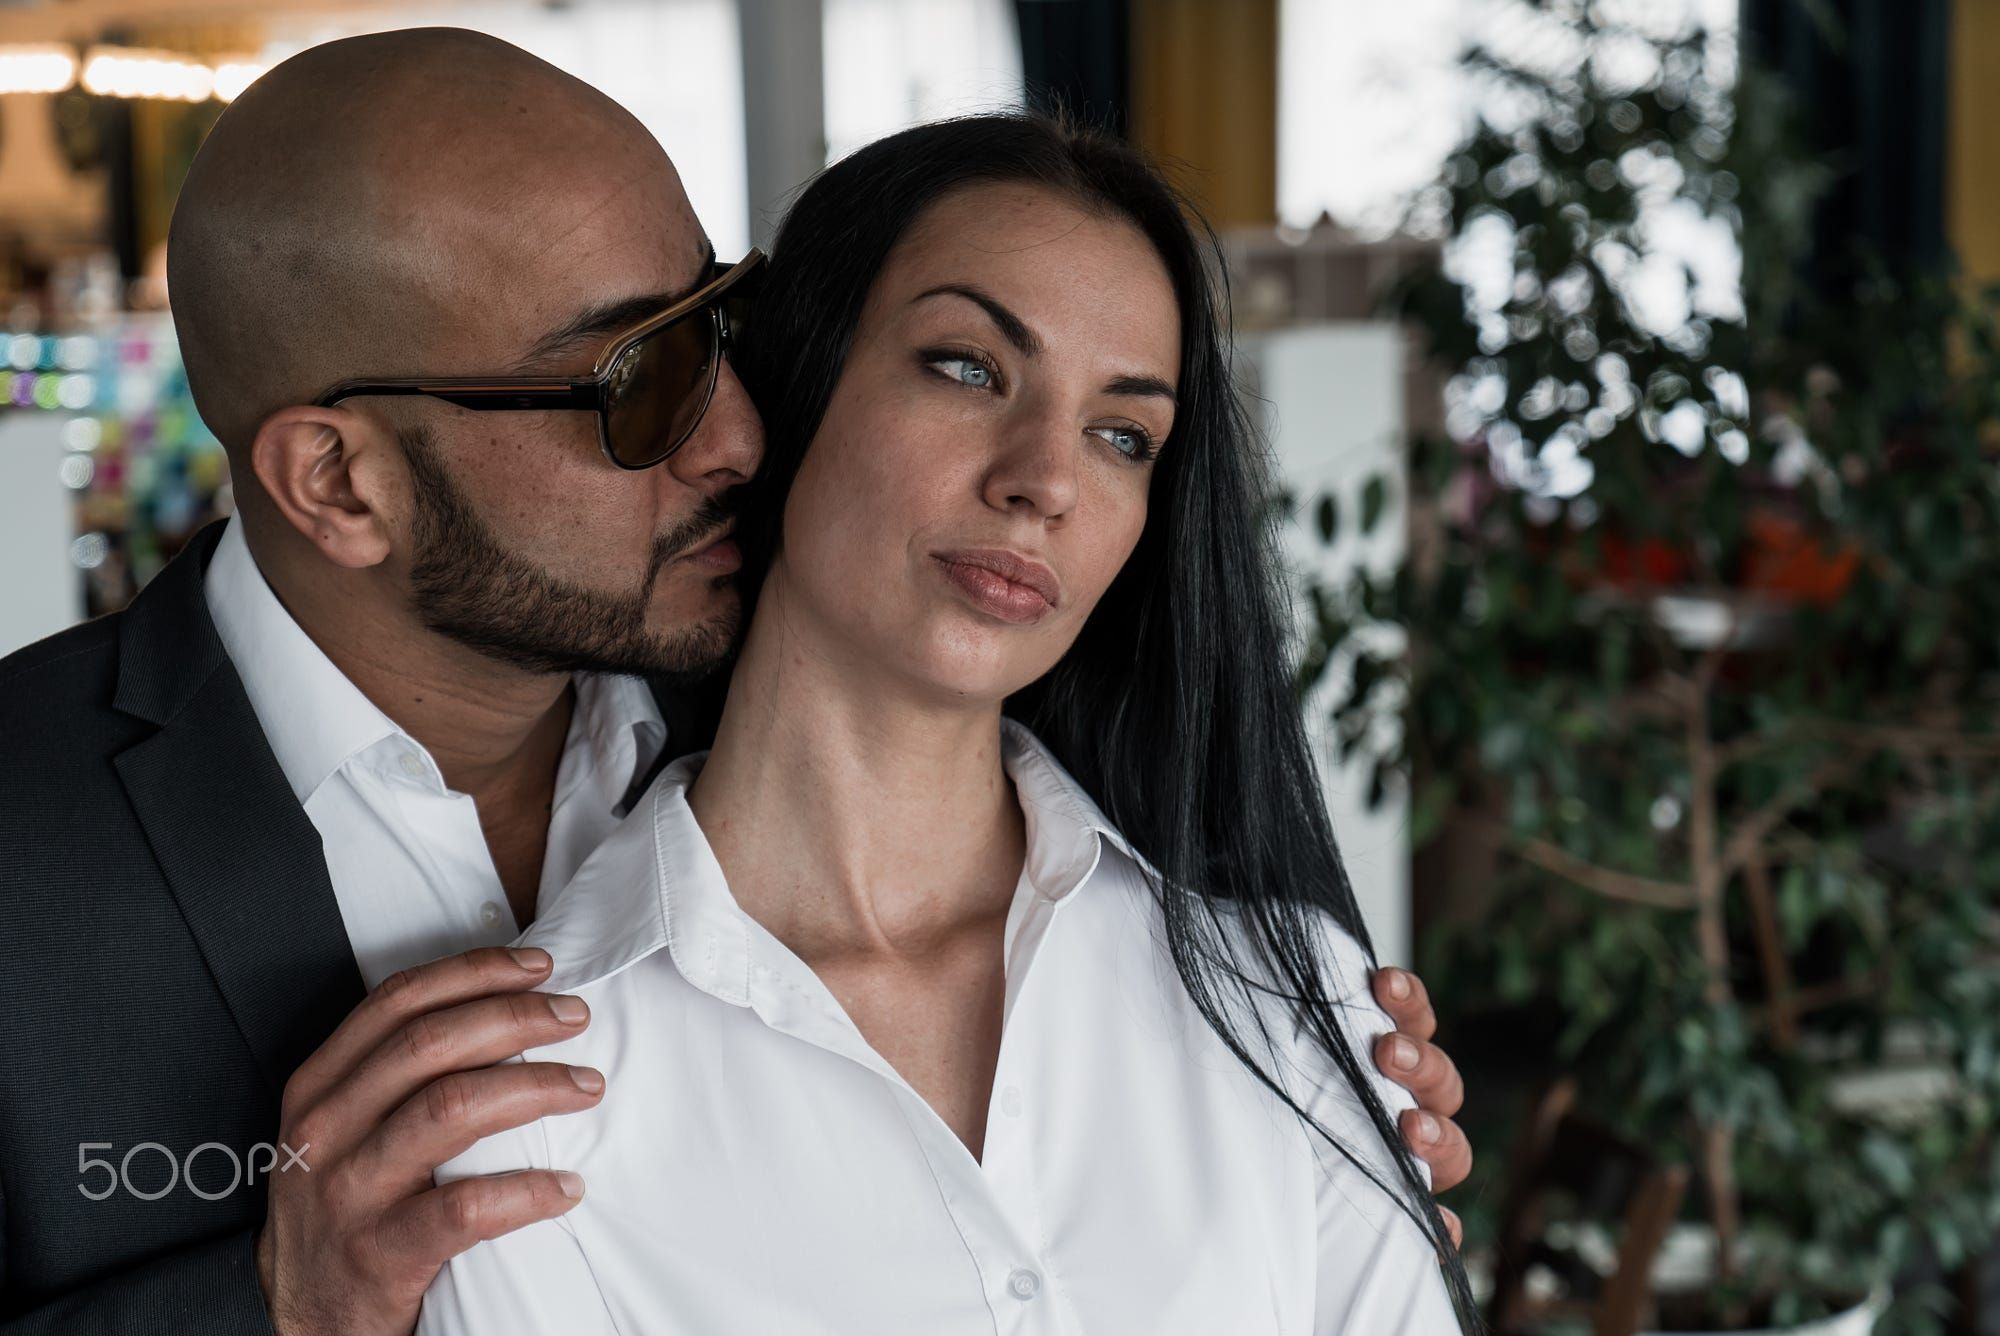 What to know when dating an arab man